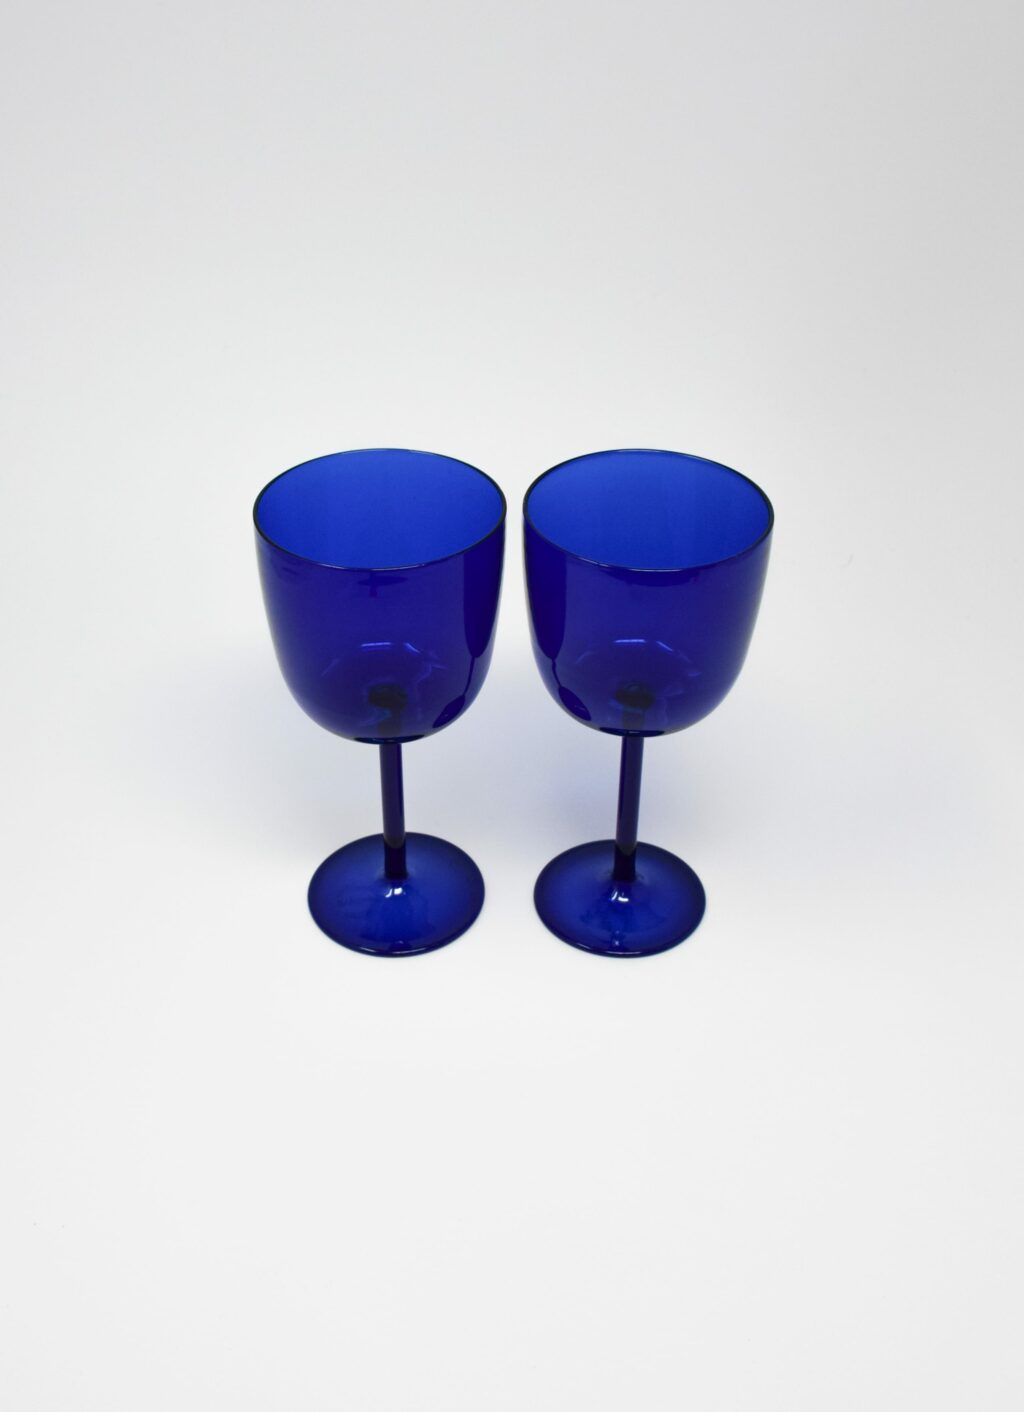 Research and Design Lab - Tuccio - Calice - Set of two - Lyons blue